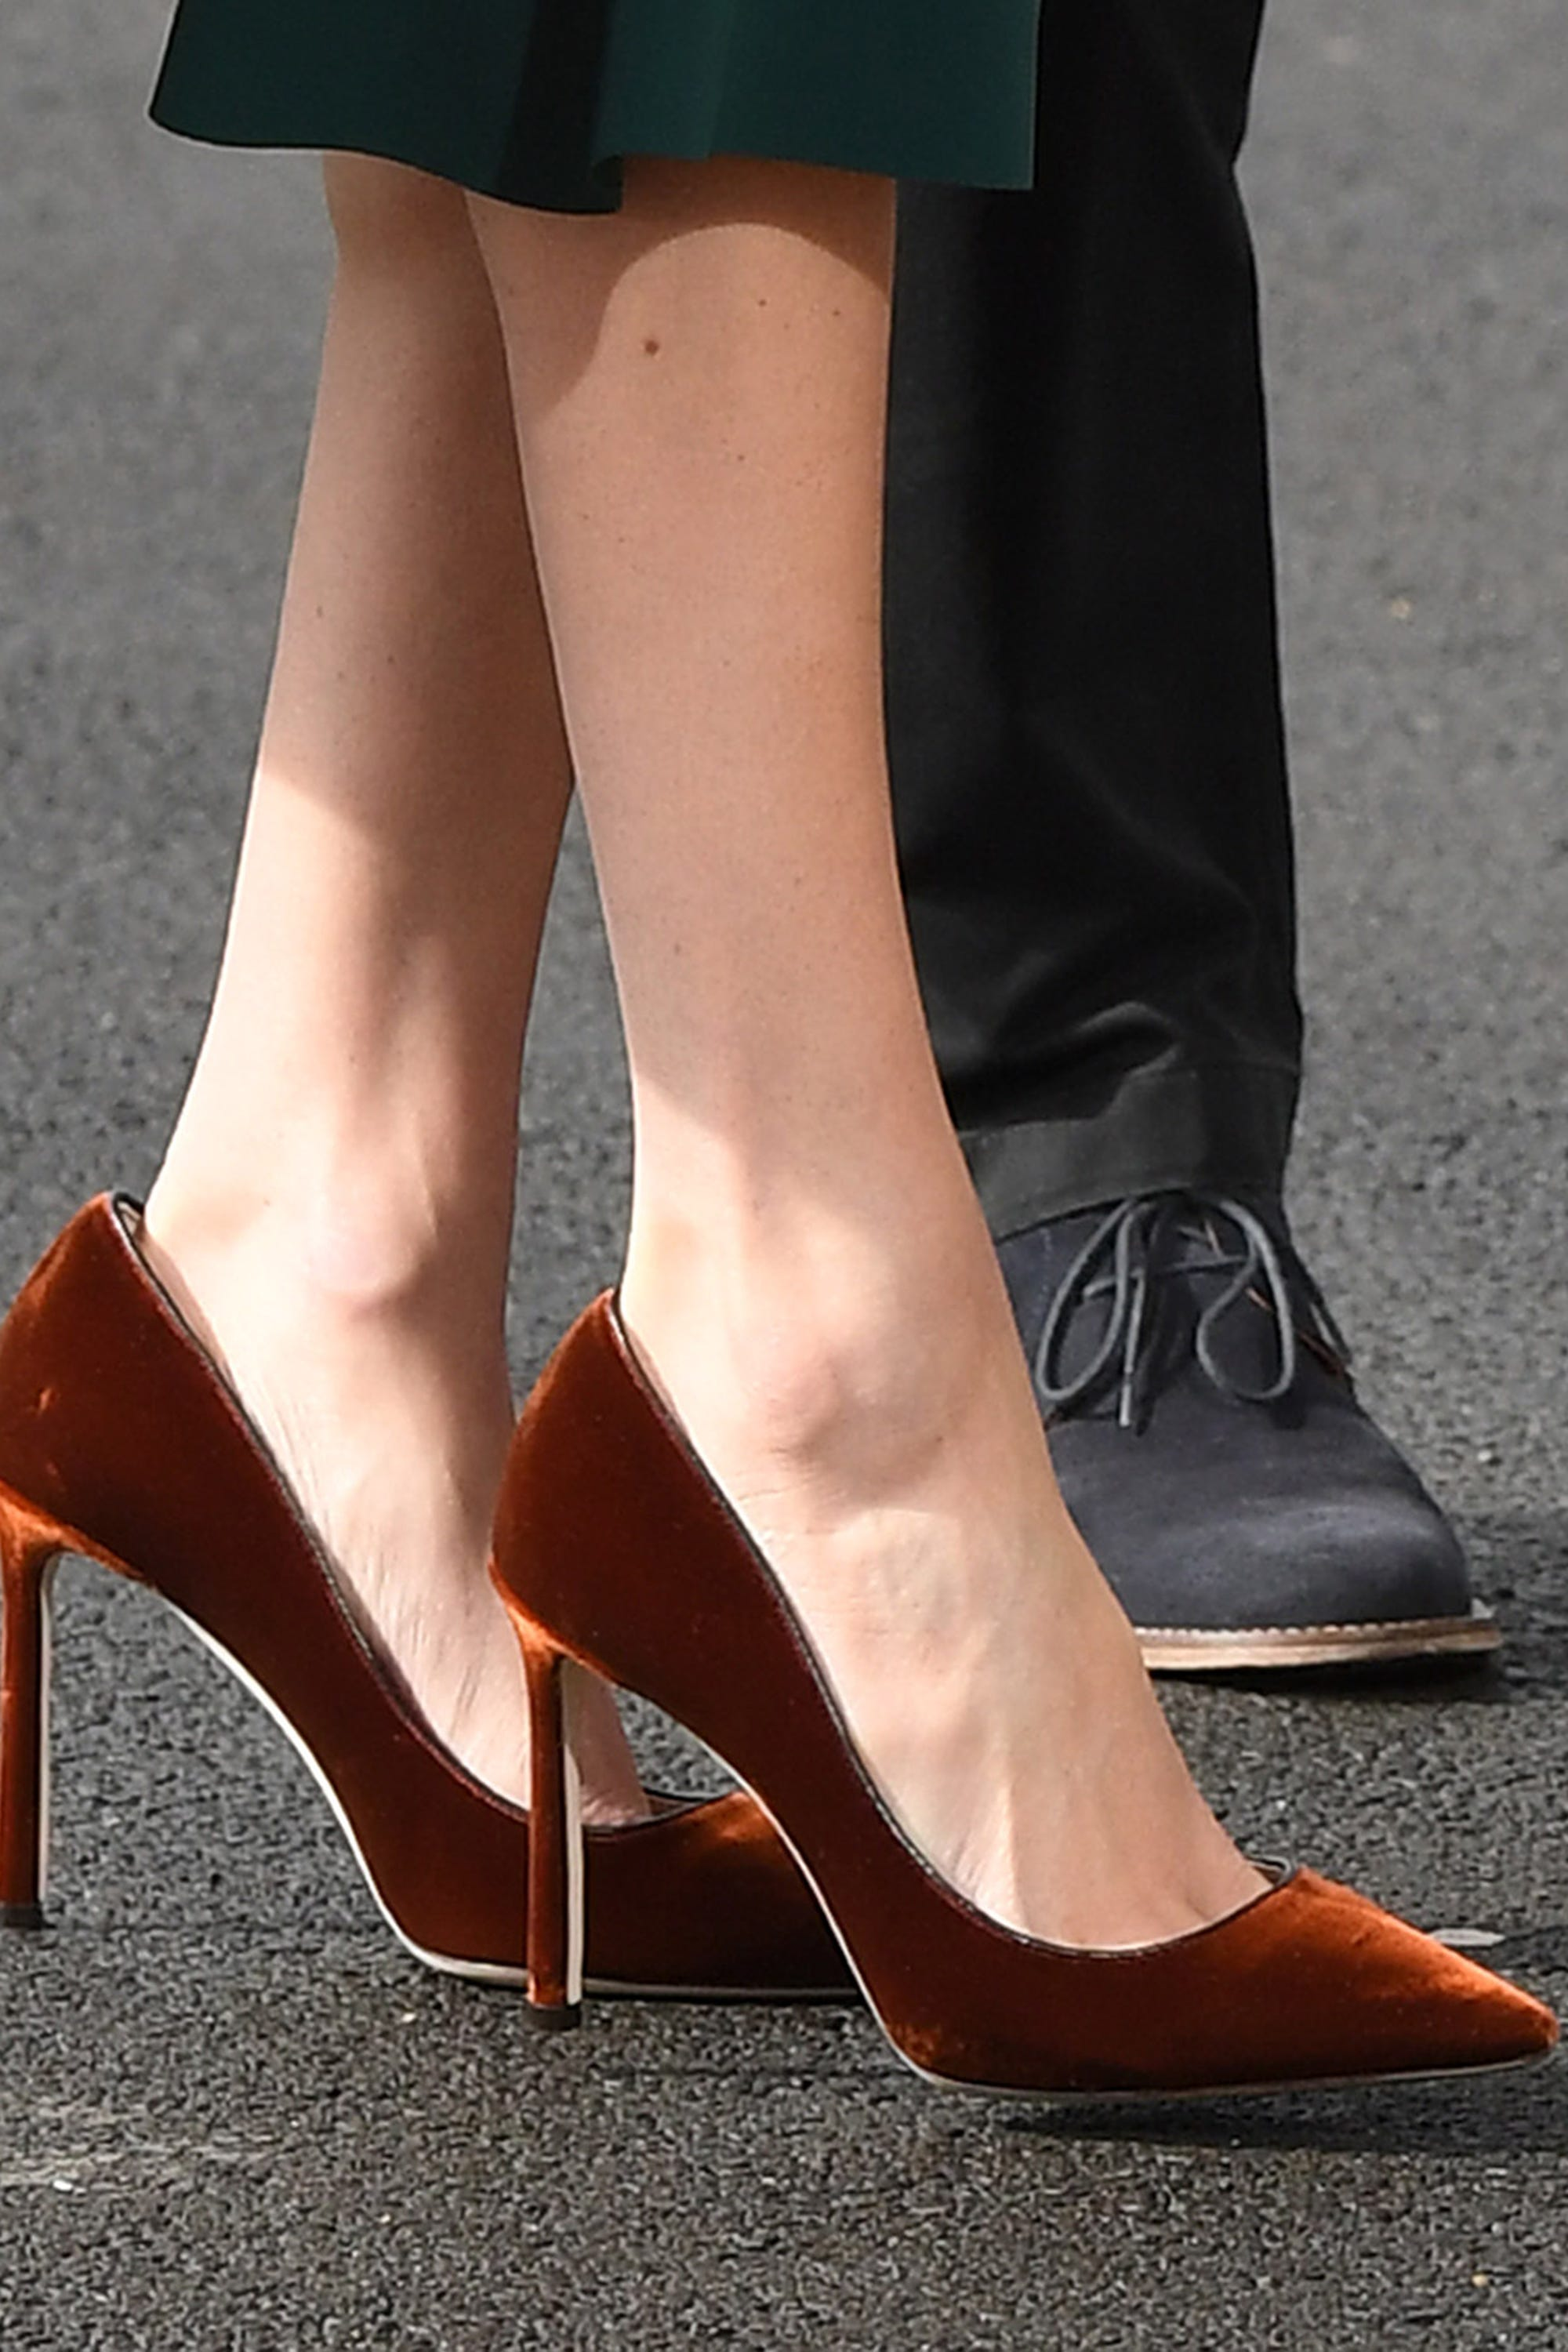 9f8e5904e1cd Meghan Markle Wears Her Shoes Too Big To Avoid Blisters